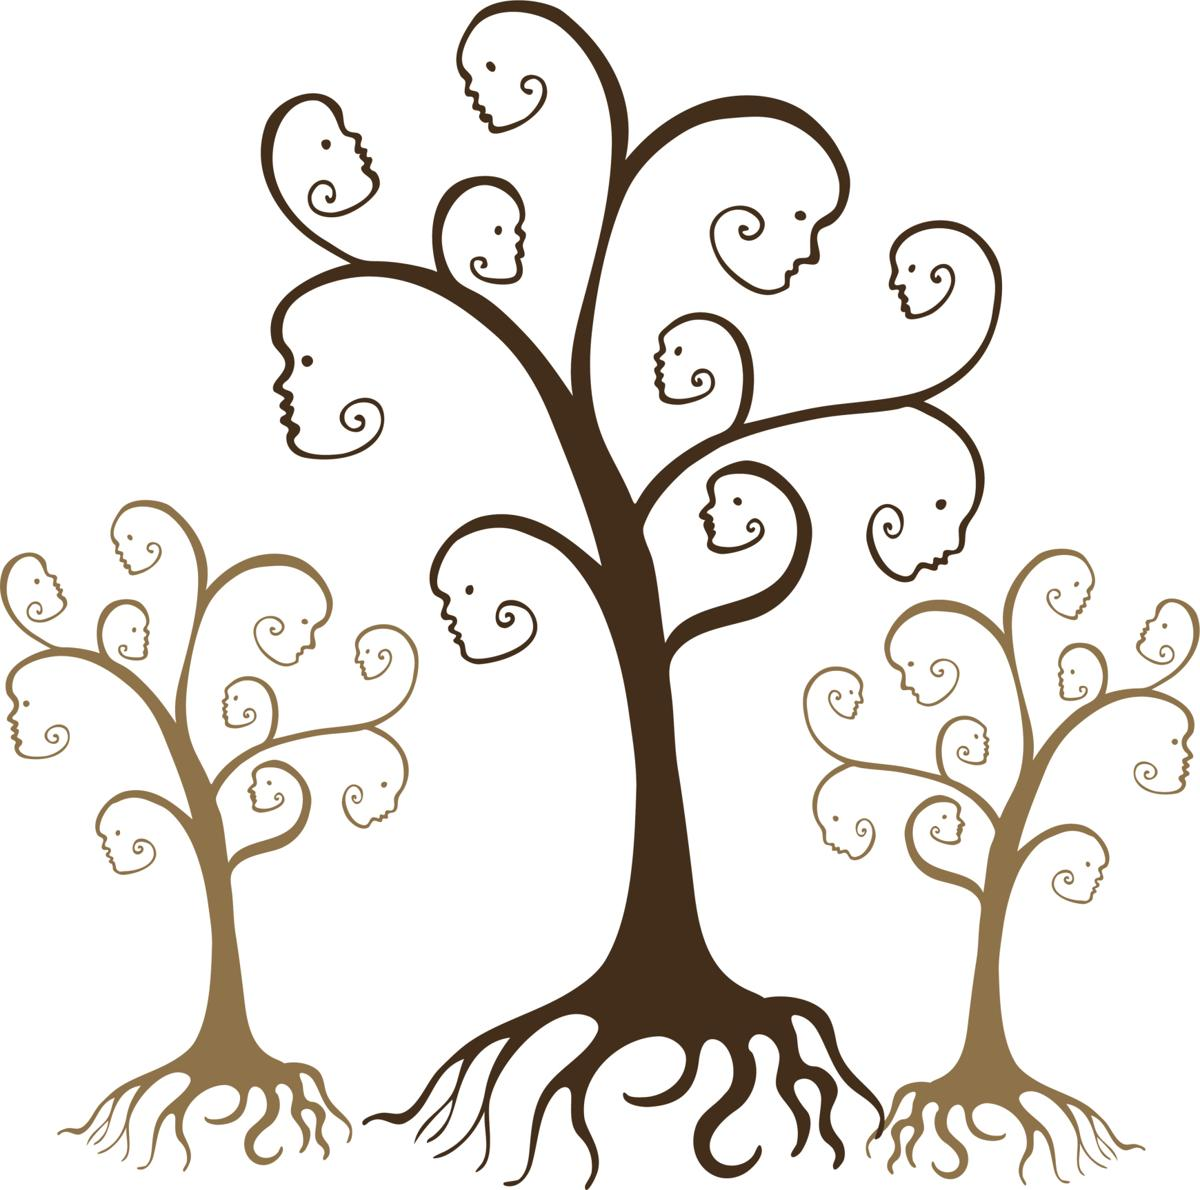 1200x1190 Amazing Family Tree Tattoos To Keep Your Loved Ones Close